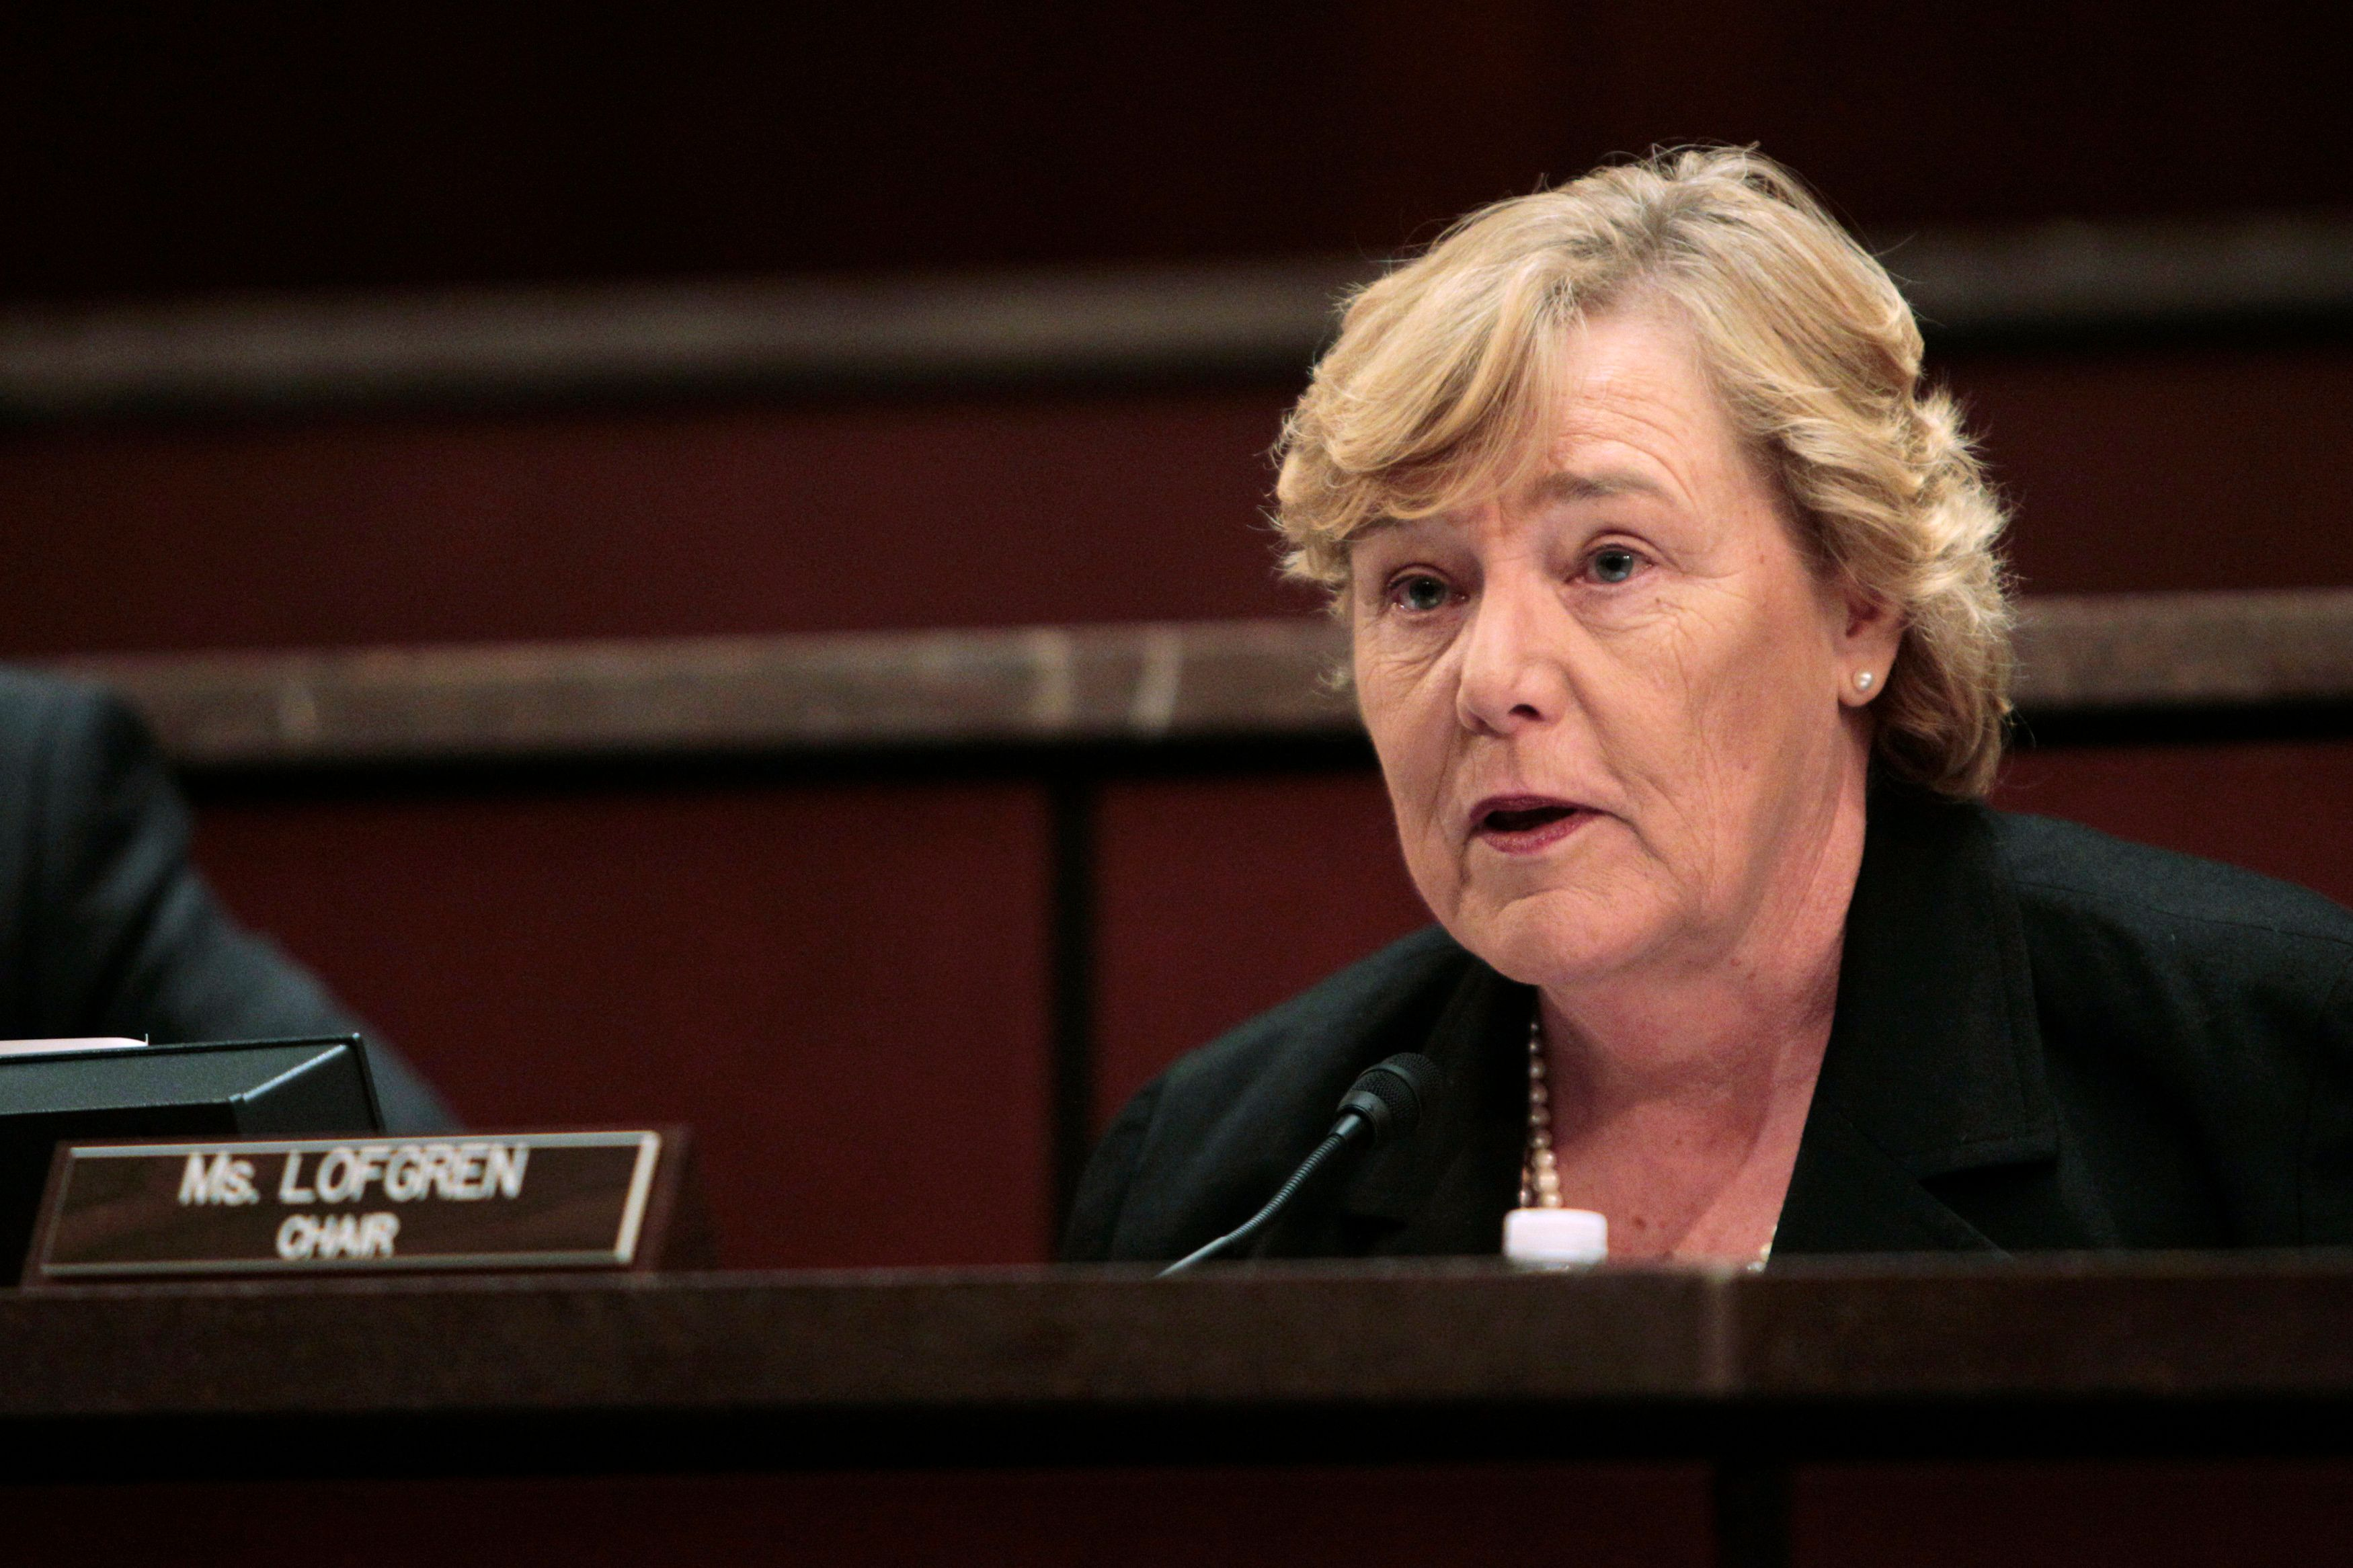 """U.S. Representative Zoe Lofgren (D-CA), the chairman of the Committee on Standards of Official Conduct (The Ethics Committee) speaks during Thursday's hearing on Capitol Hill in Washington, July 29, 2010. A U.S. House of Representatives ethics panel on Thursday began reviewing a """"tentative agreement"""" to settle charges against Representative Charles Rangel, a congressional source said on Thursday.    REUTERS/Hyungwon Kang  (UNITED STATES - Tags: CRIME LAW POLITICS PROFILE)"""